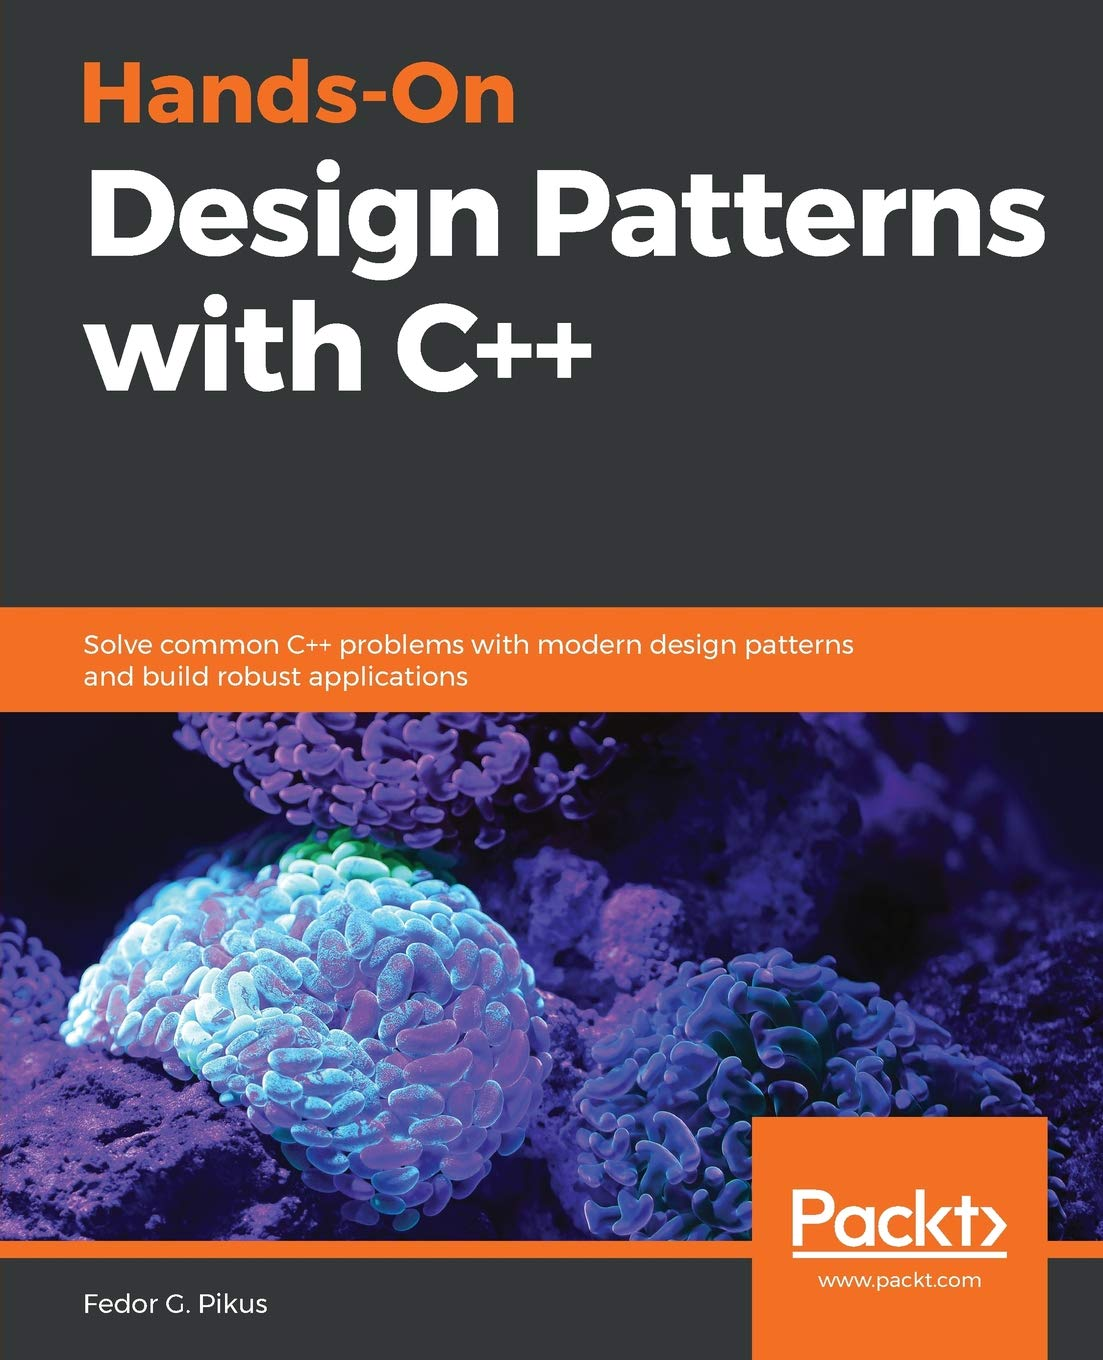 Amazon com: Hands-On Design Patterns with C++: Solve common